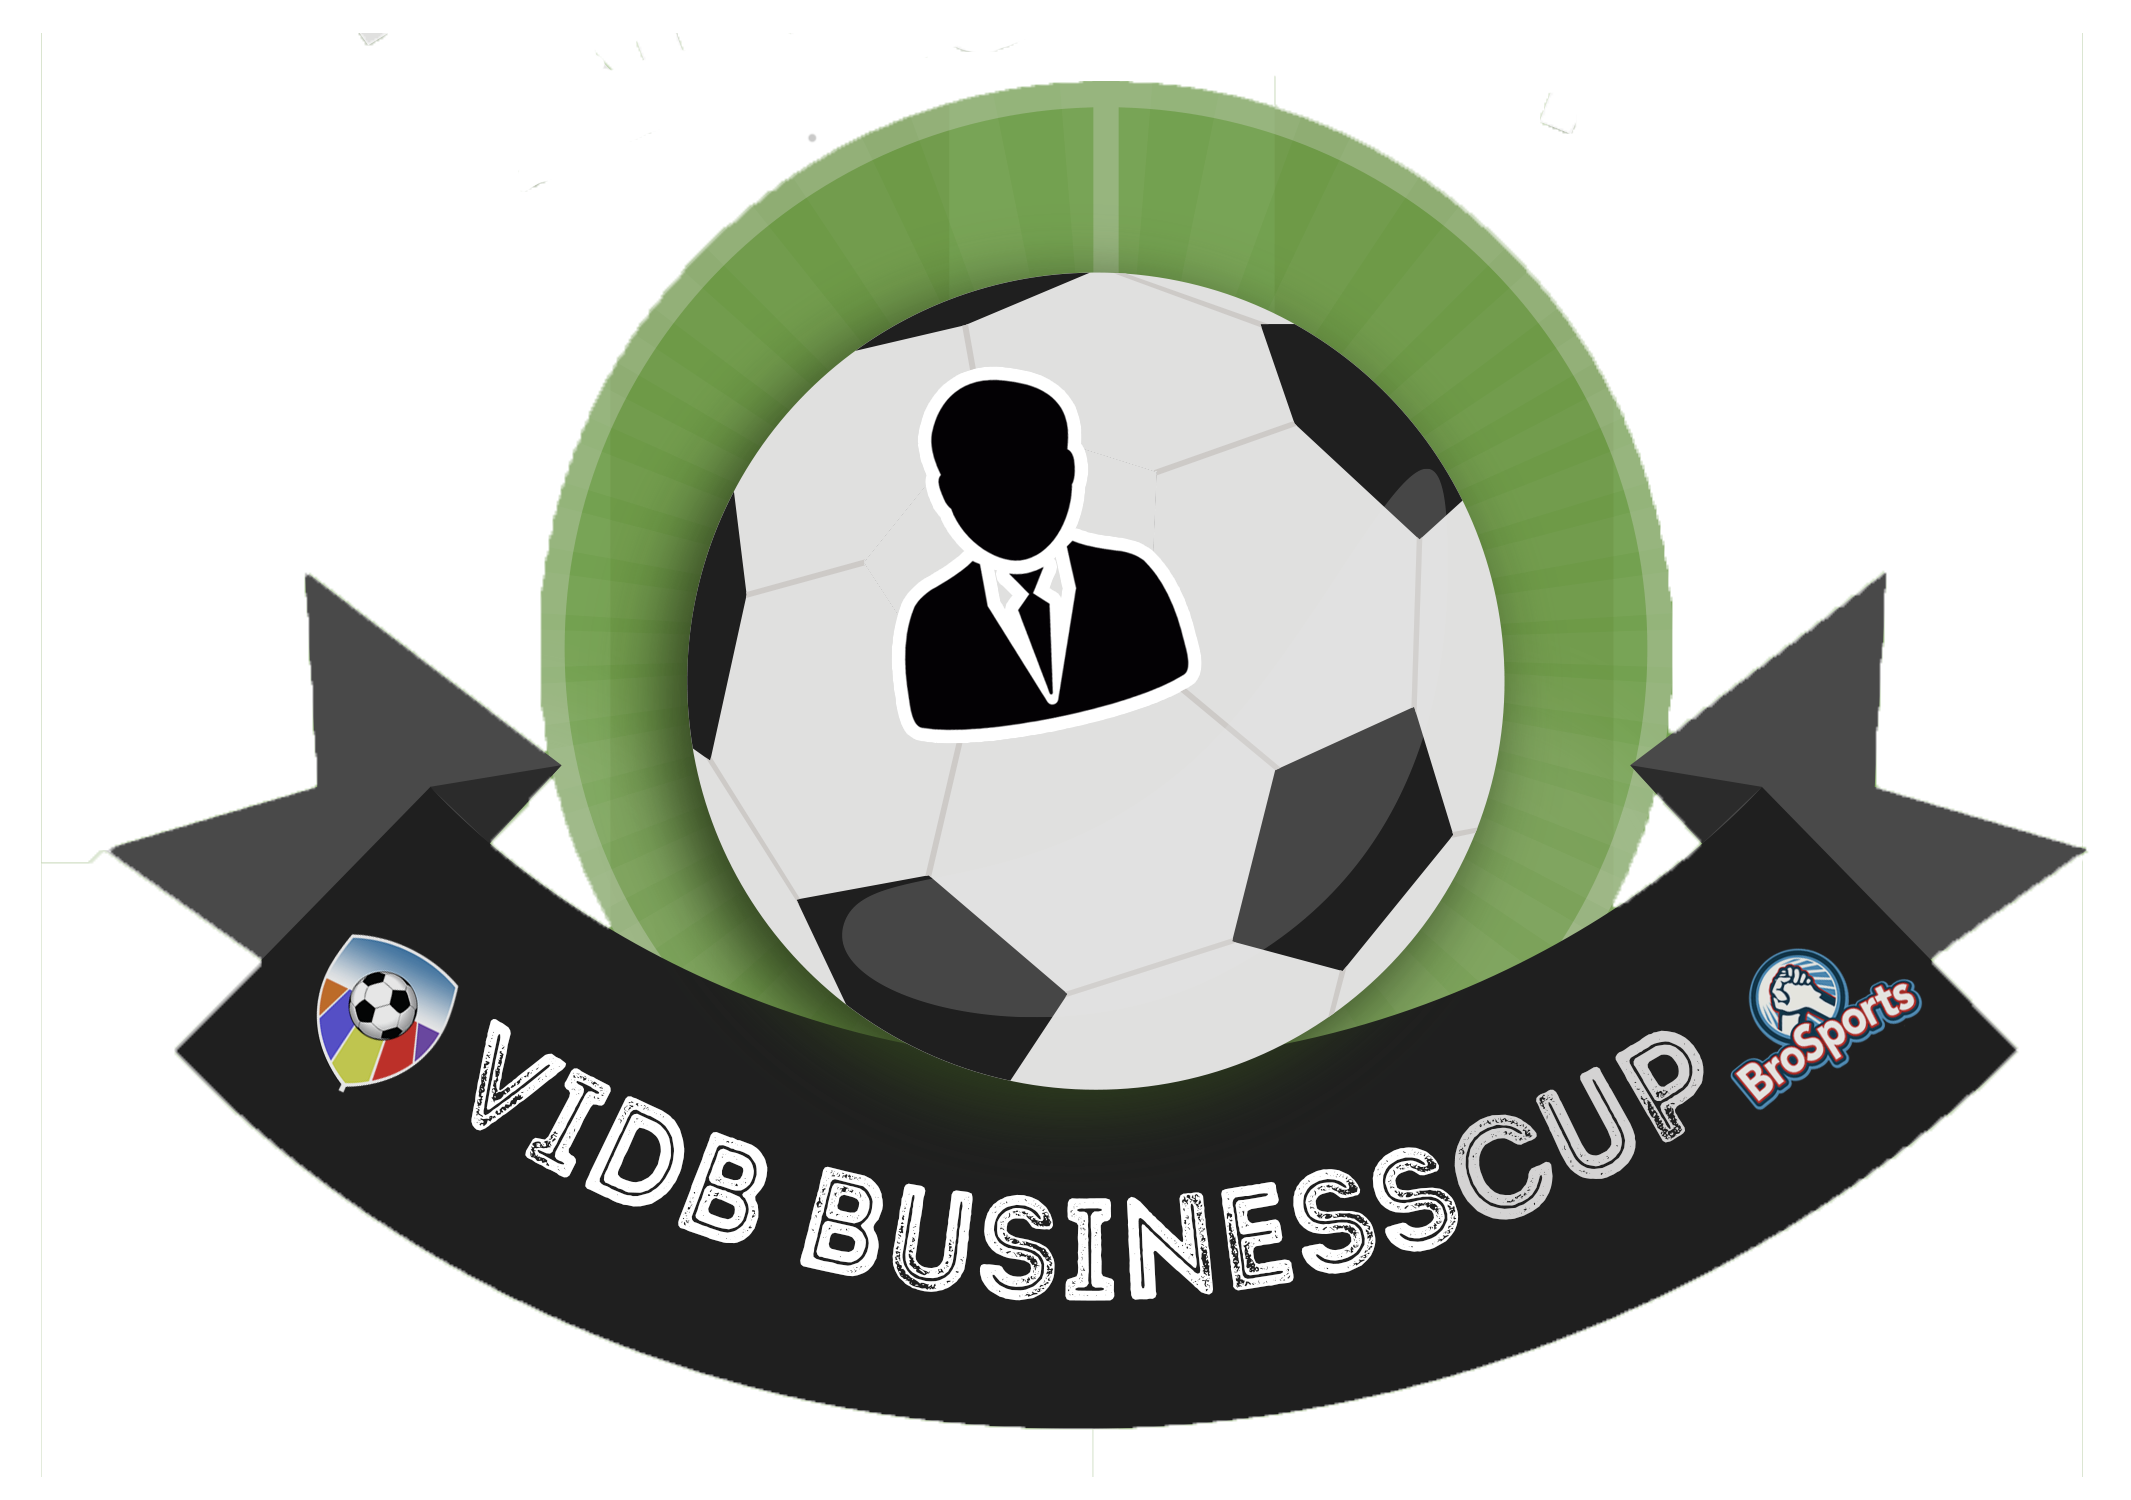 VIDB BusinessCup